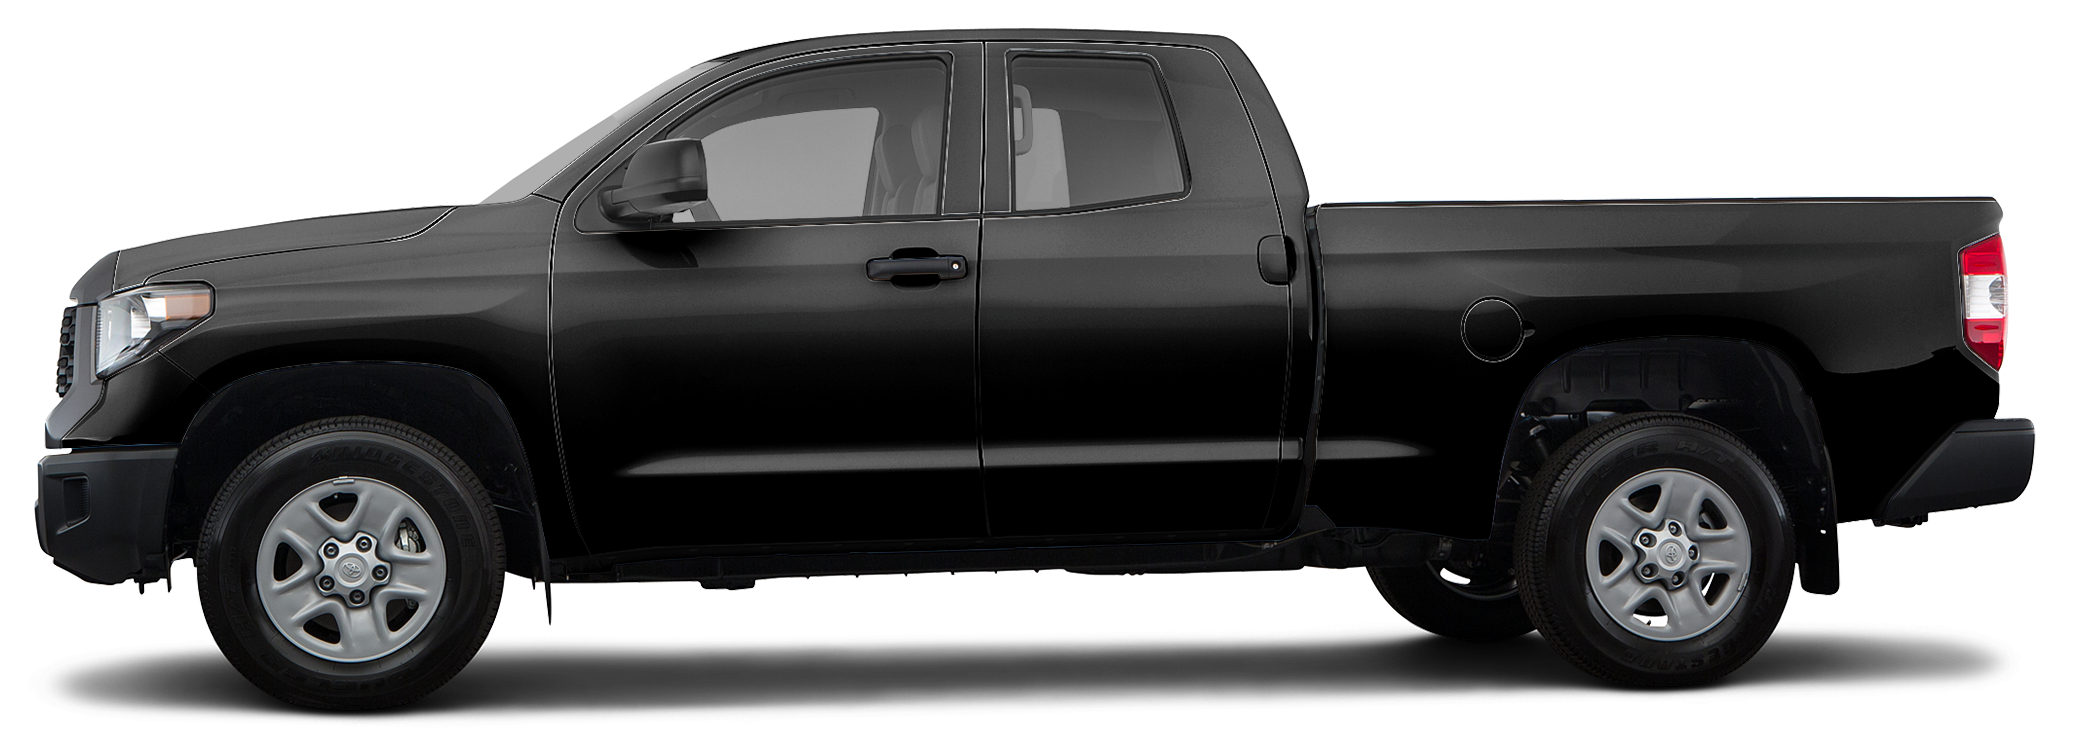 2019 Toyota Tundra at Toyota Town of Stockton